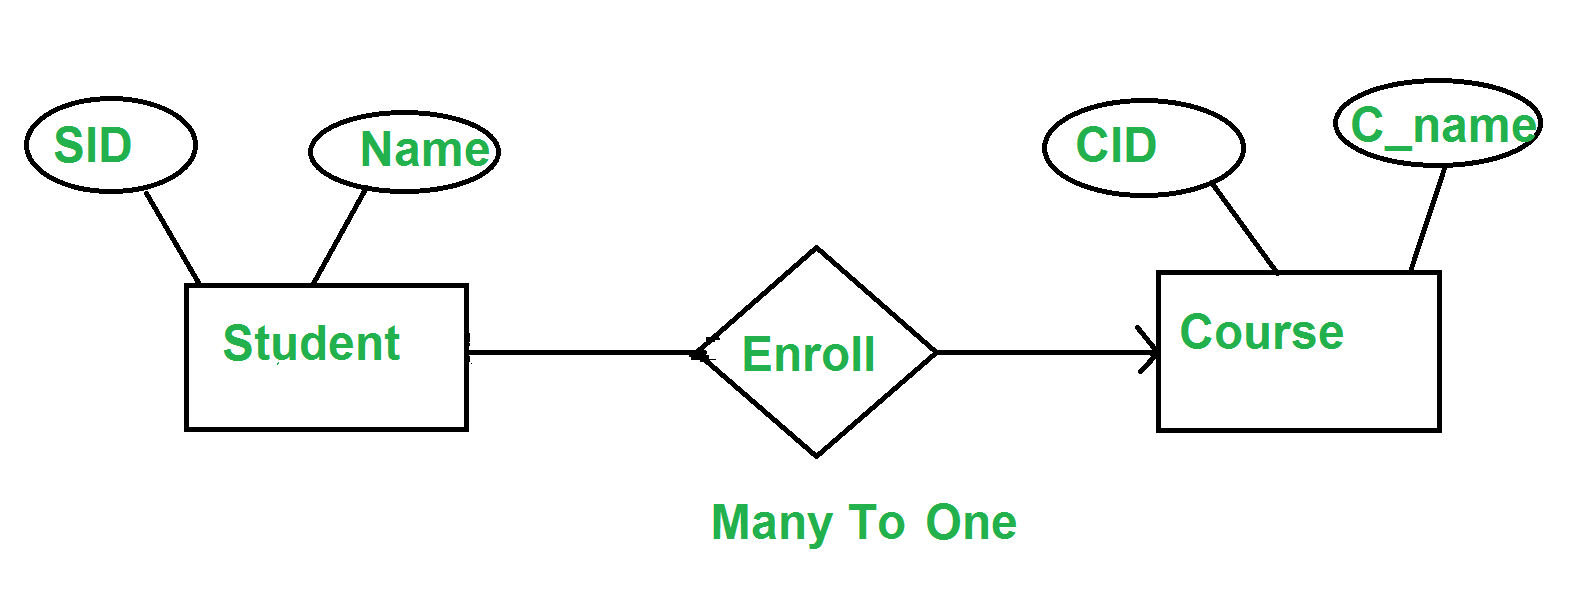 Minimization Of Er Diagrams - Geeksforgeeks pertaining to Entity Relationship Diagram One To One